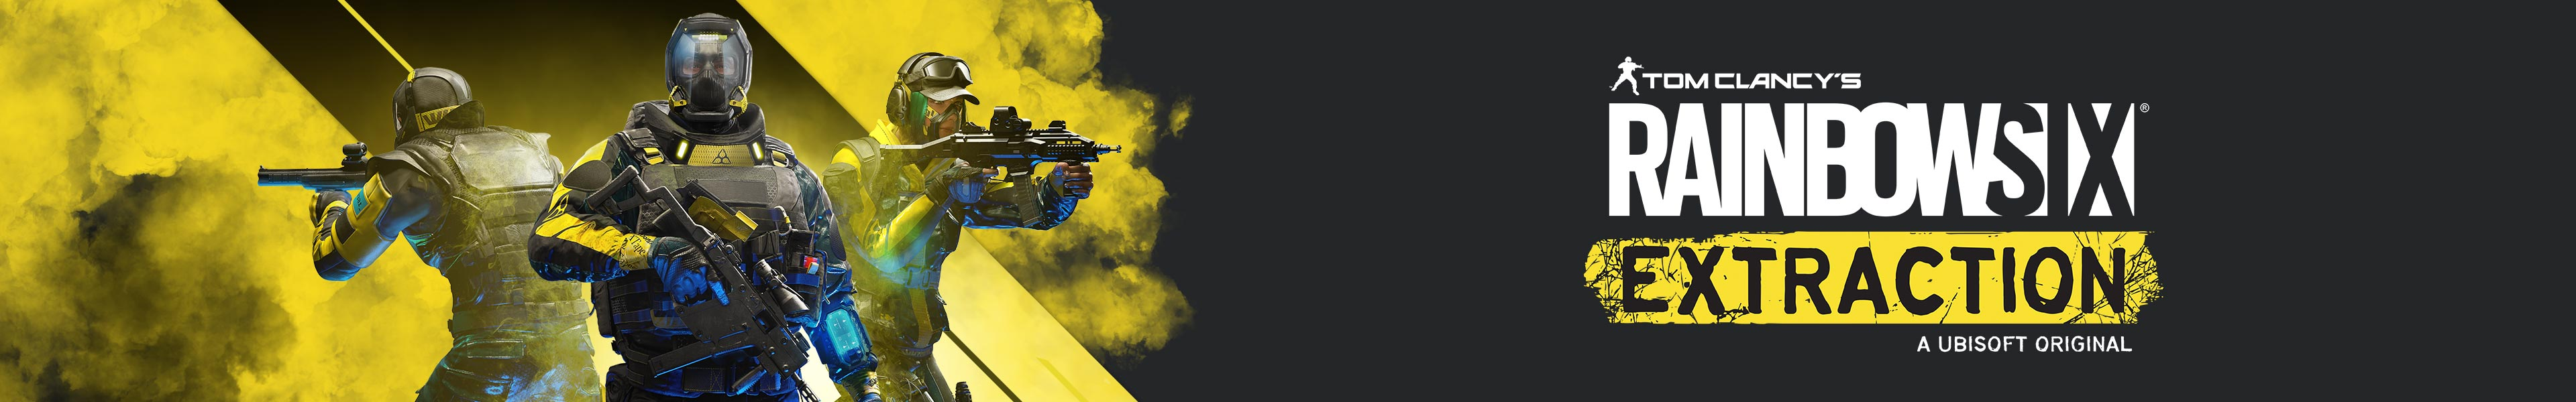 Rainbow Six Extraction Category banner